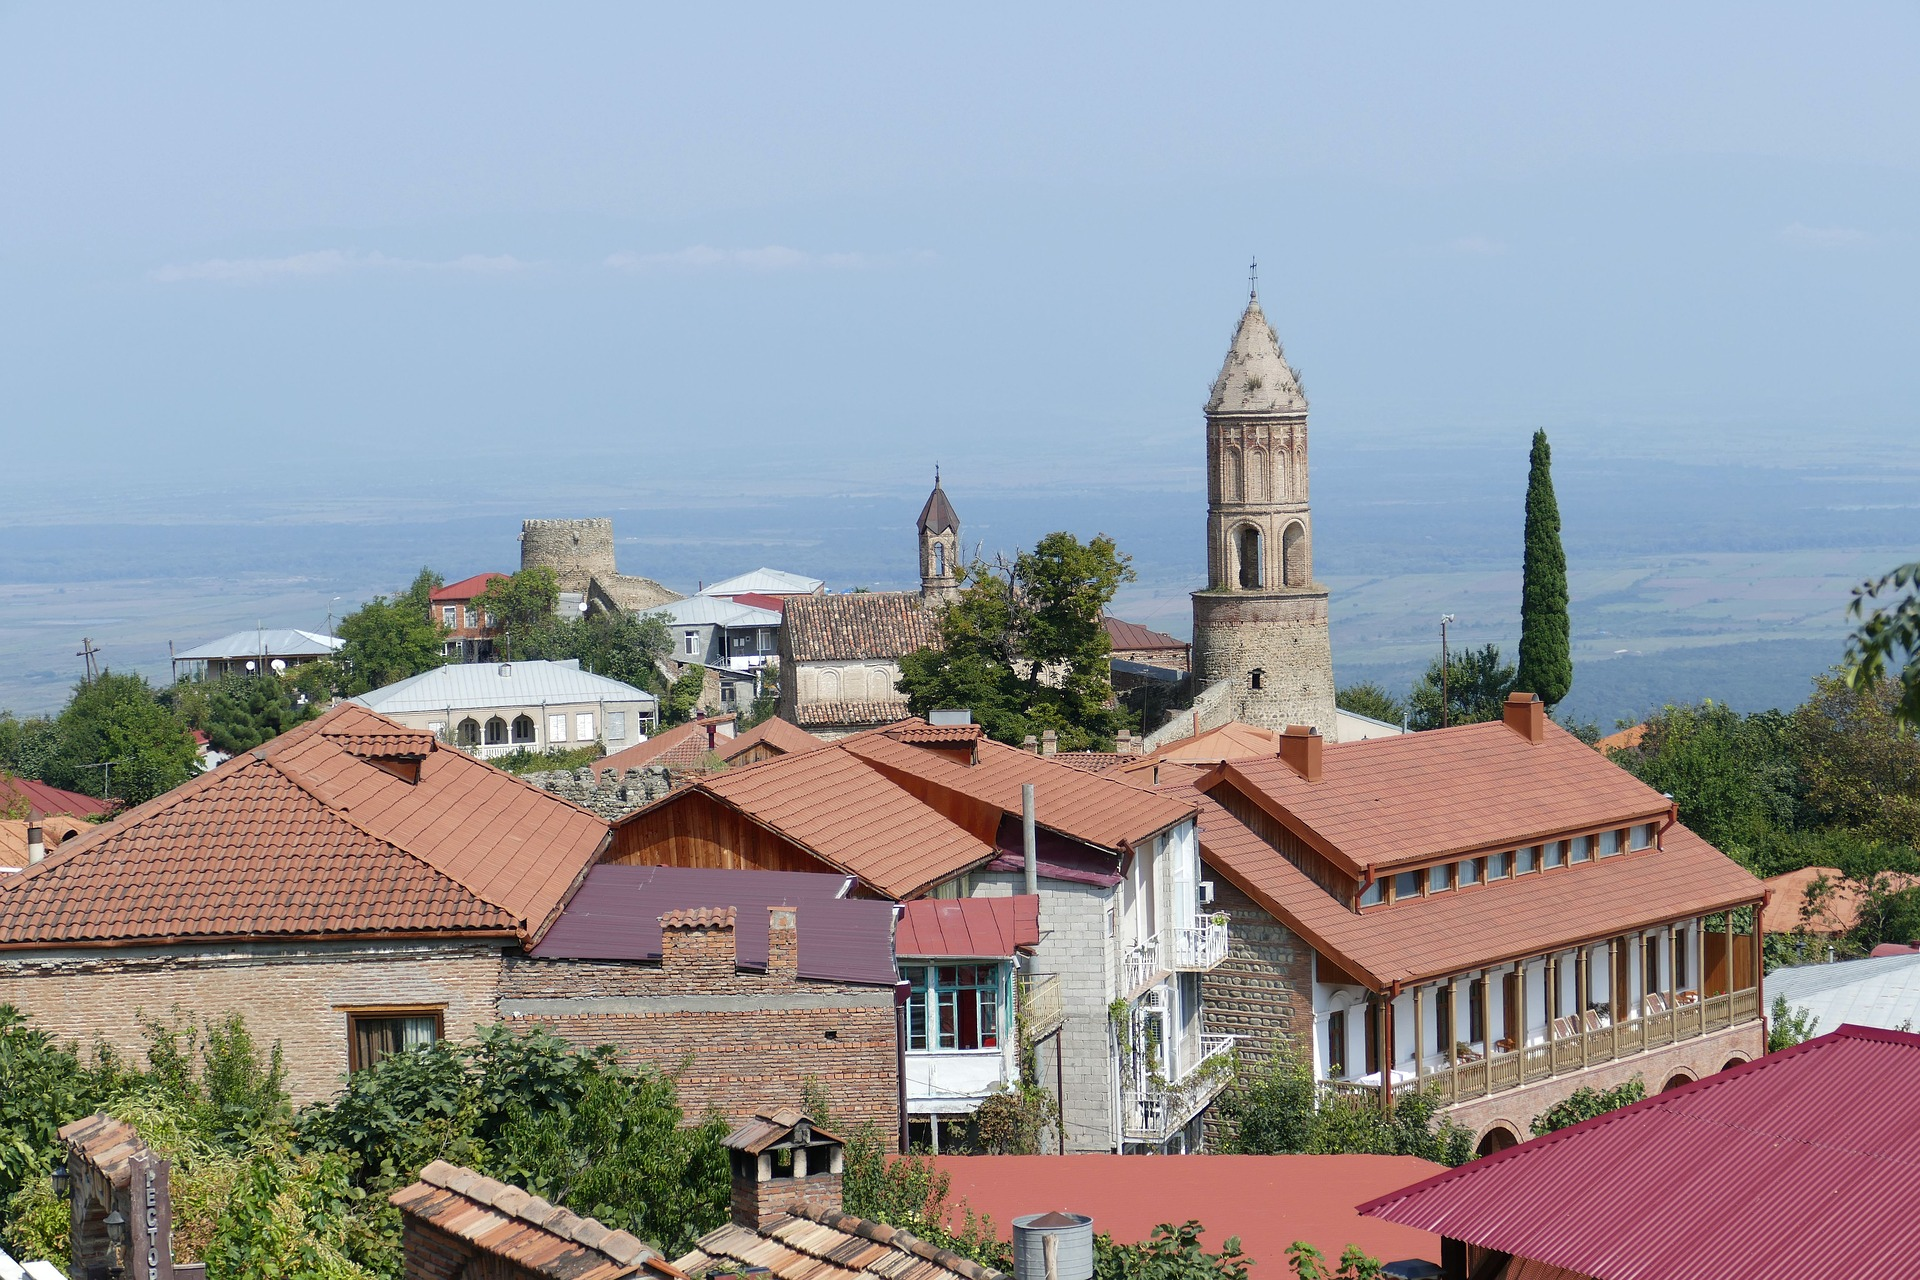 Sighnaghi is a great home base from which to explore the wine roads of Kakheti